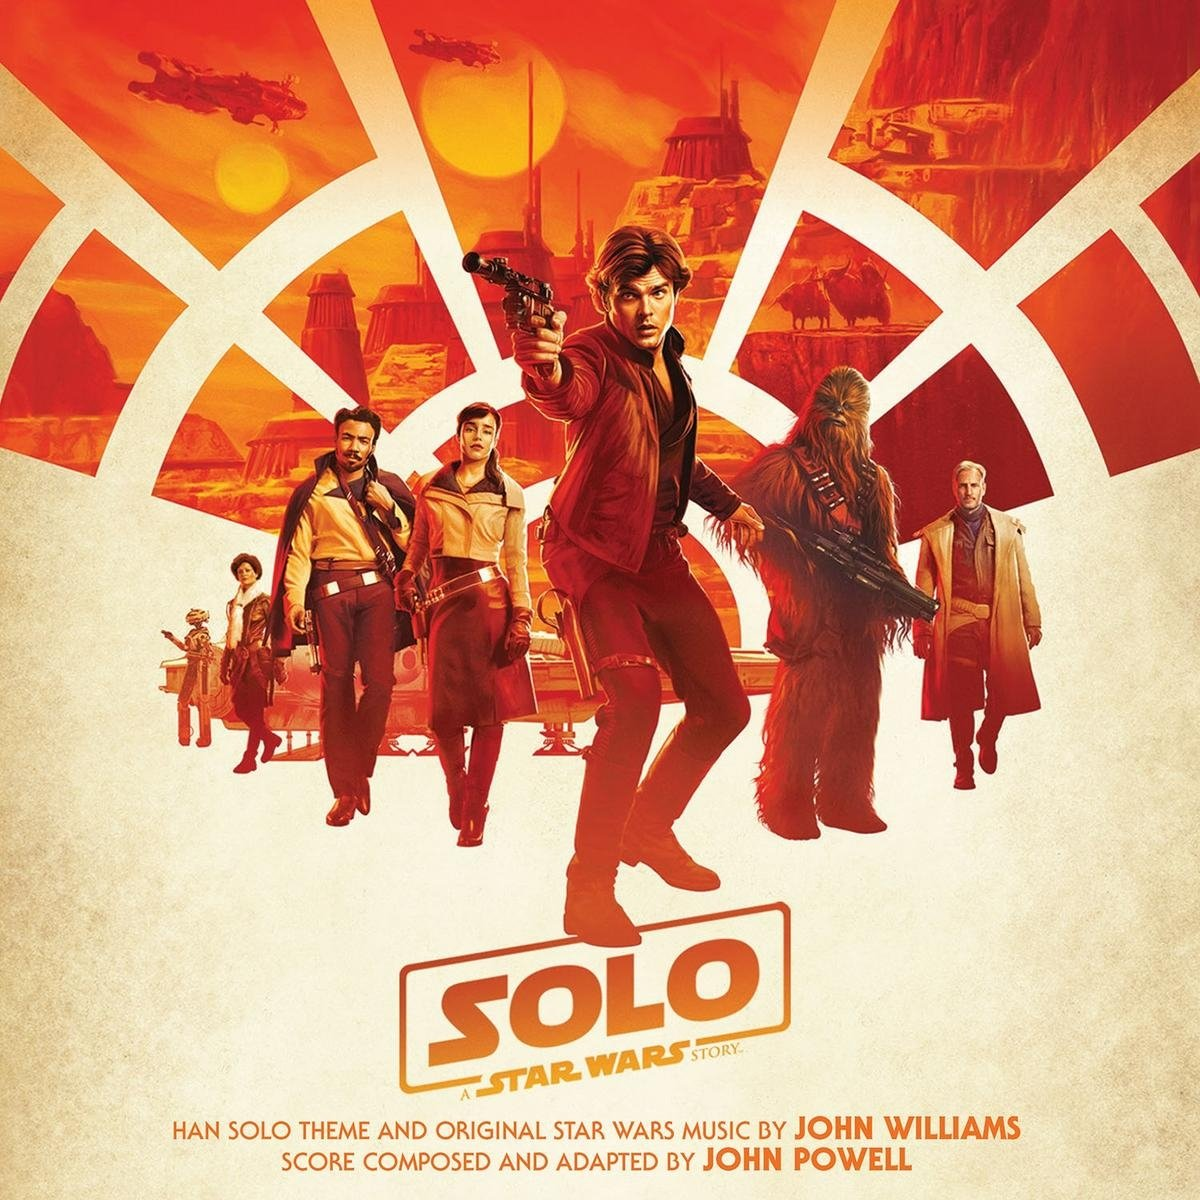 John Powell - Solo: A Star Wars Story (Original Motion Picture Soundtrack)  - Amazon.com Music